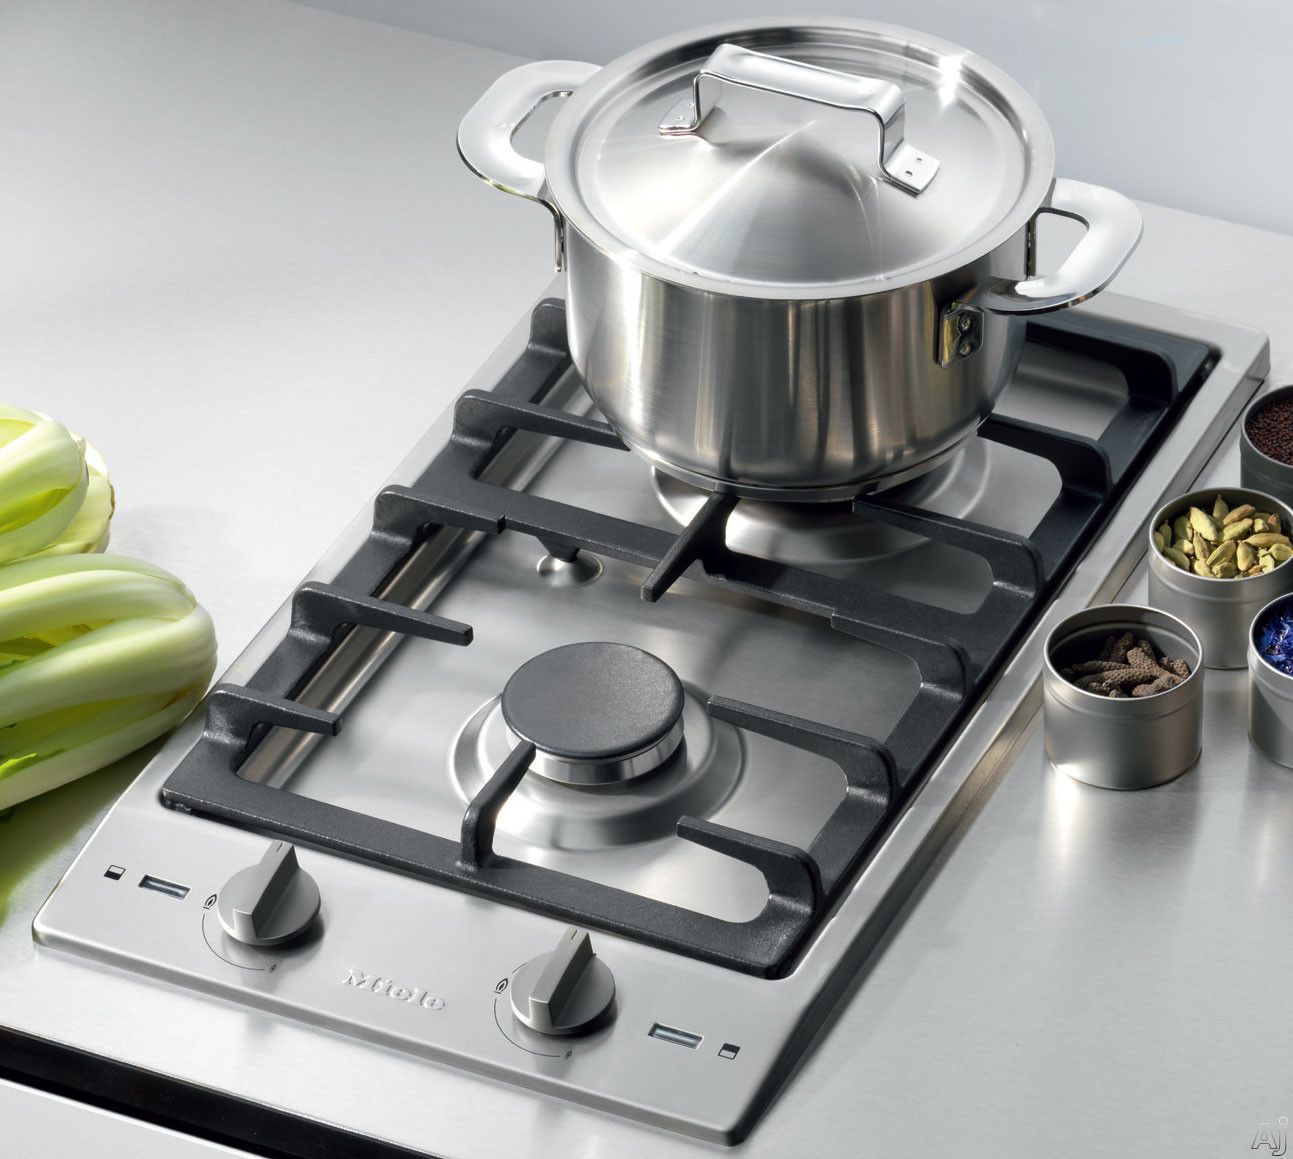 Miele Cs10121 12 Quot Gas Cooktop With 2 Sealed Burners